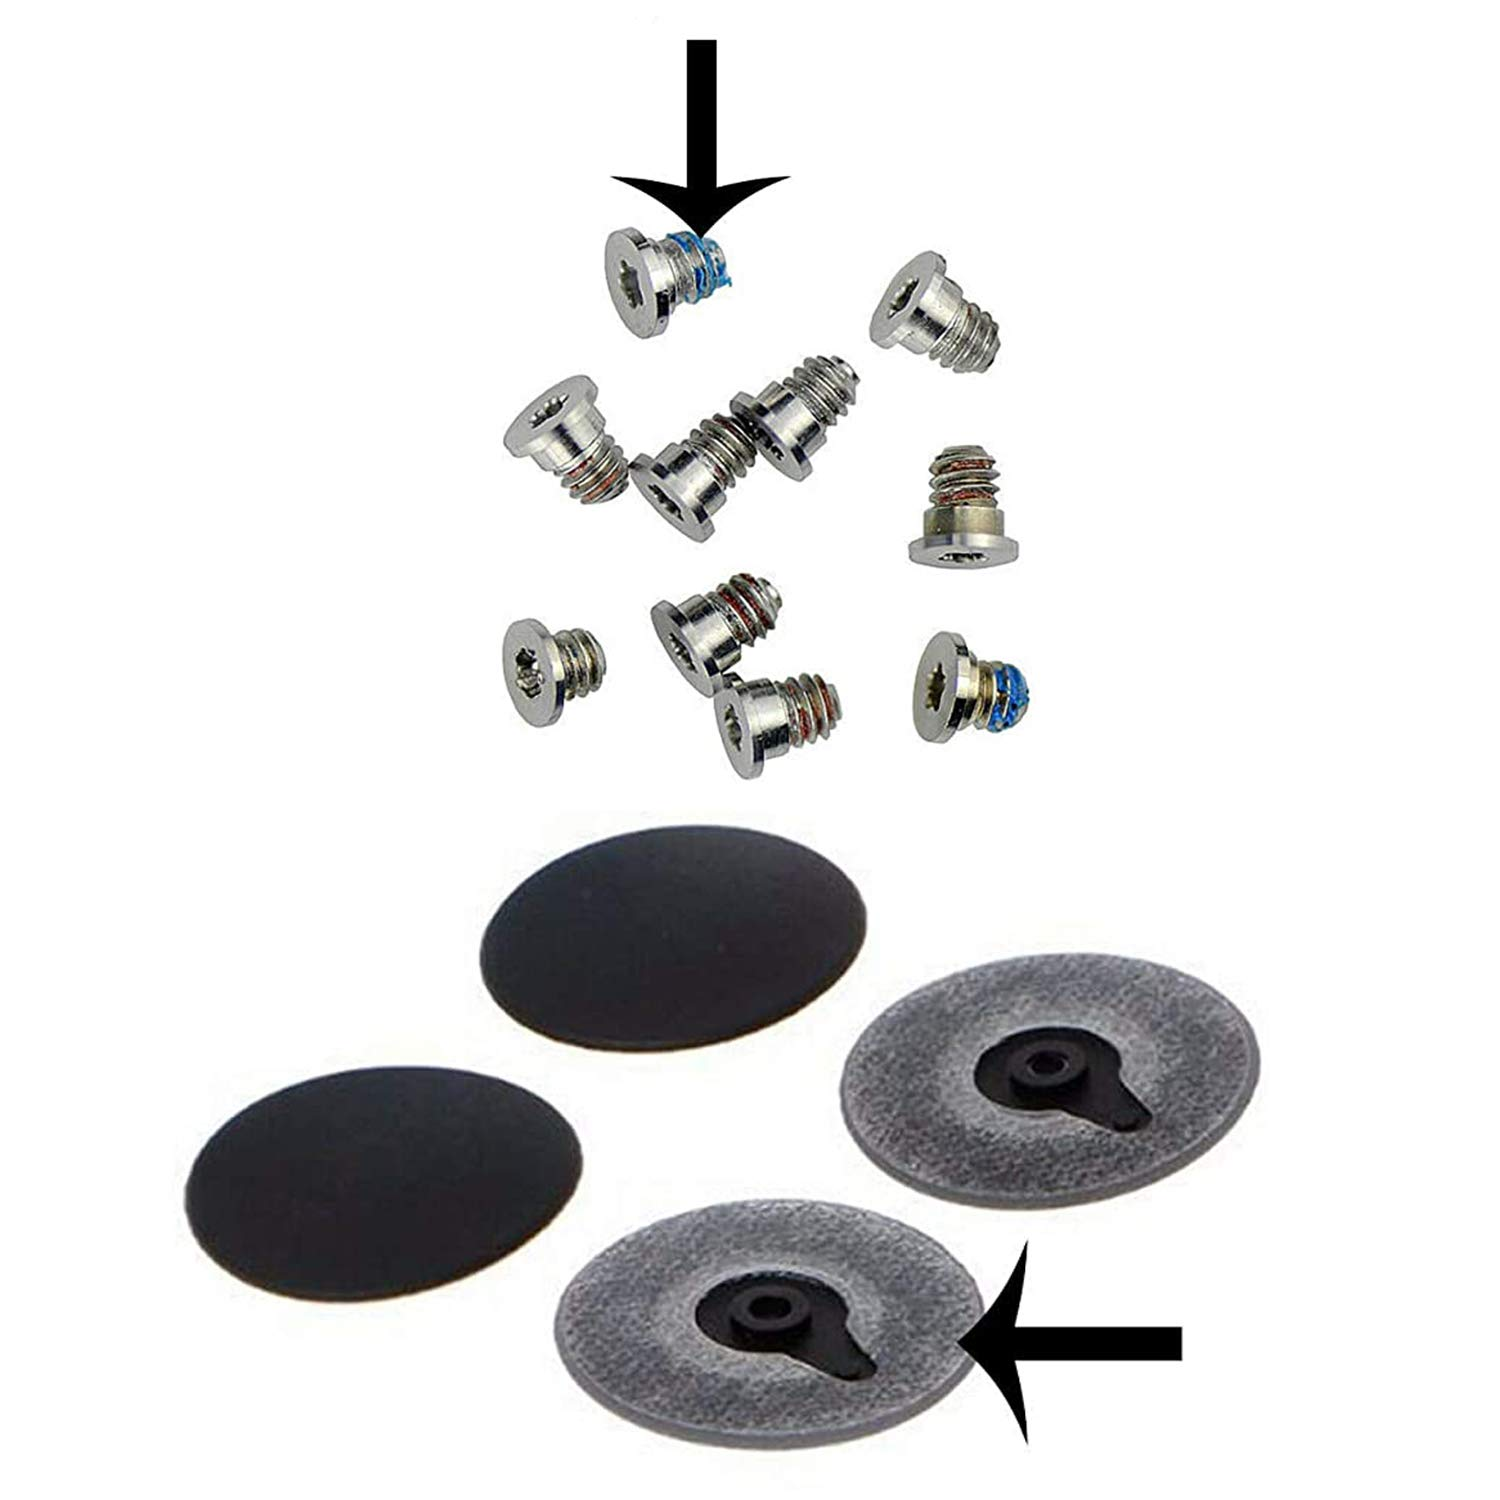 Infinite Products Replacement For MacBook Pro and MacBook Pro Retina Rubber Feet with Screws for 13